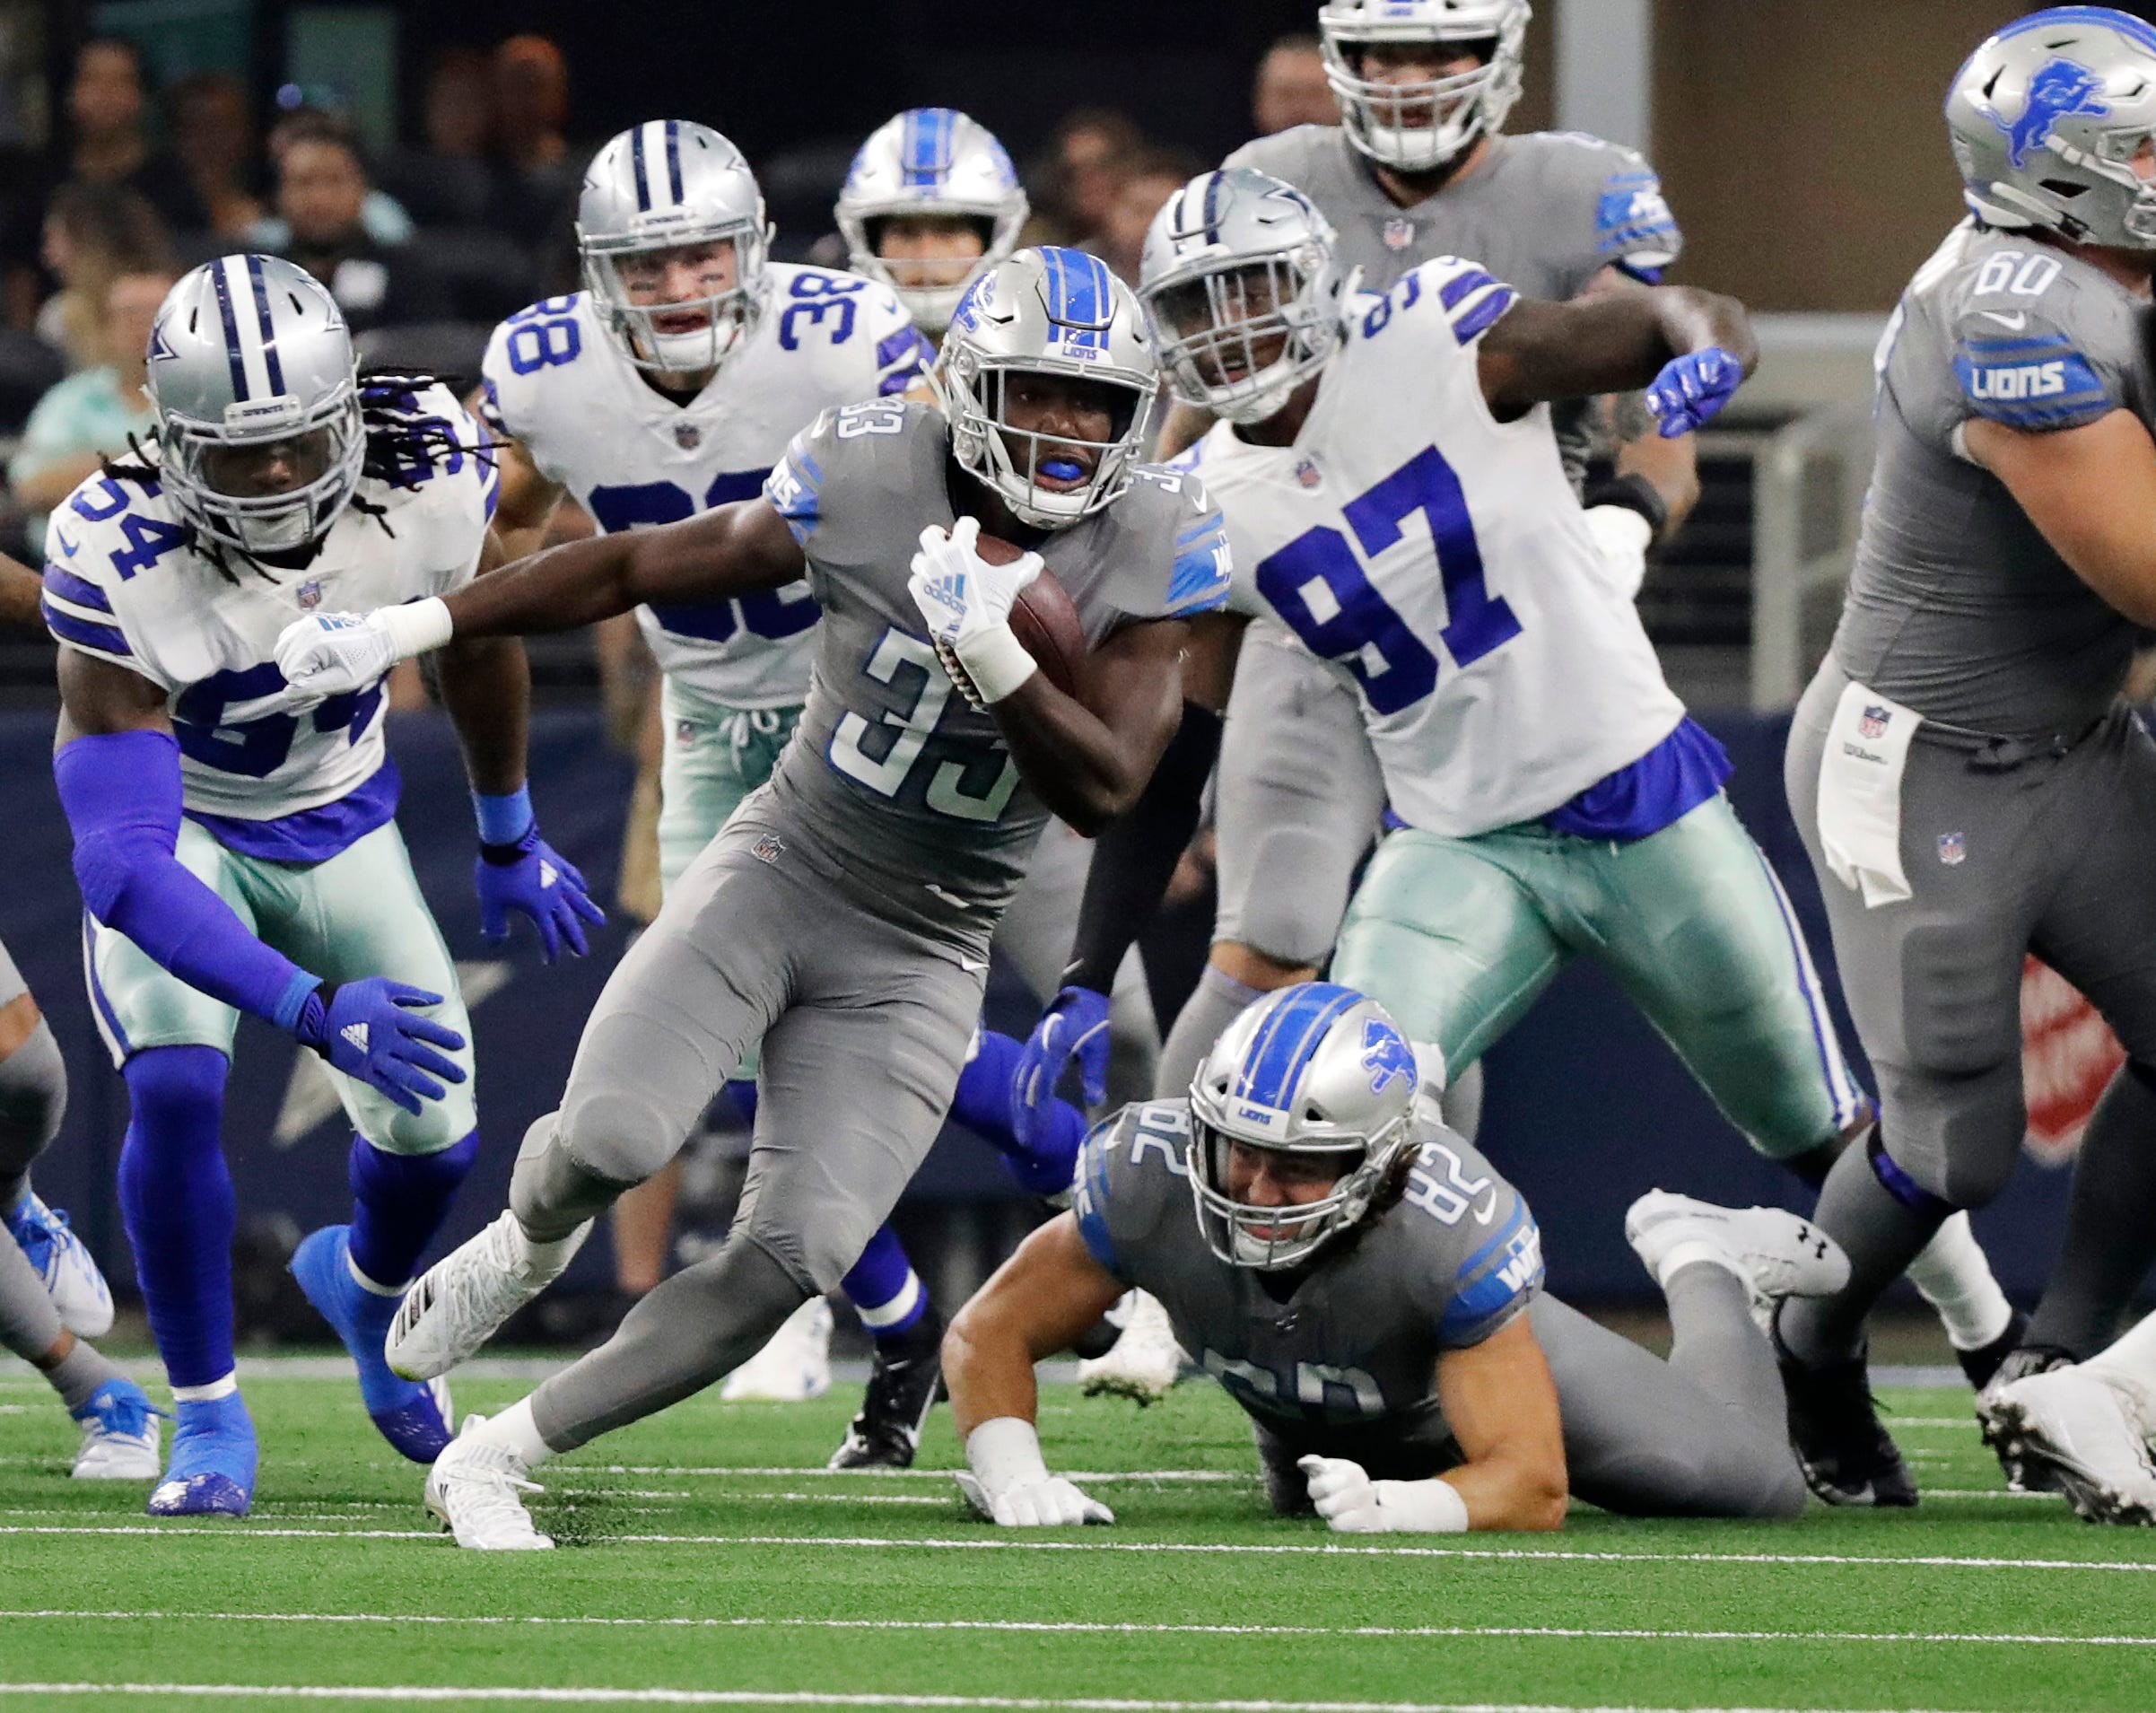 Lions running back Kerryon Johnson runs past Cowboys defensive end Taco Charlton in the first half of their game in Arlington, Texas, Sunday, Sept. 30, 2018.